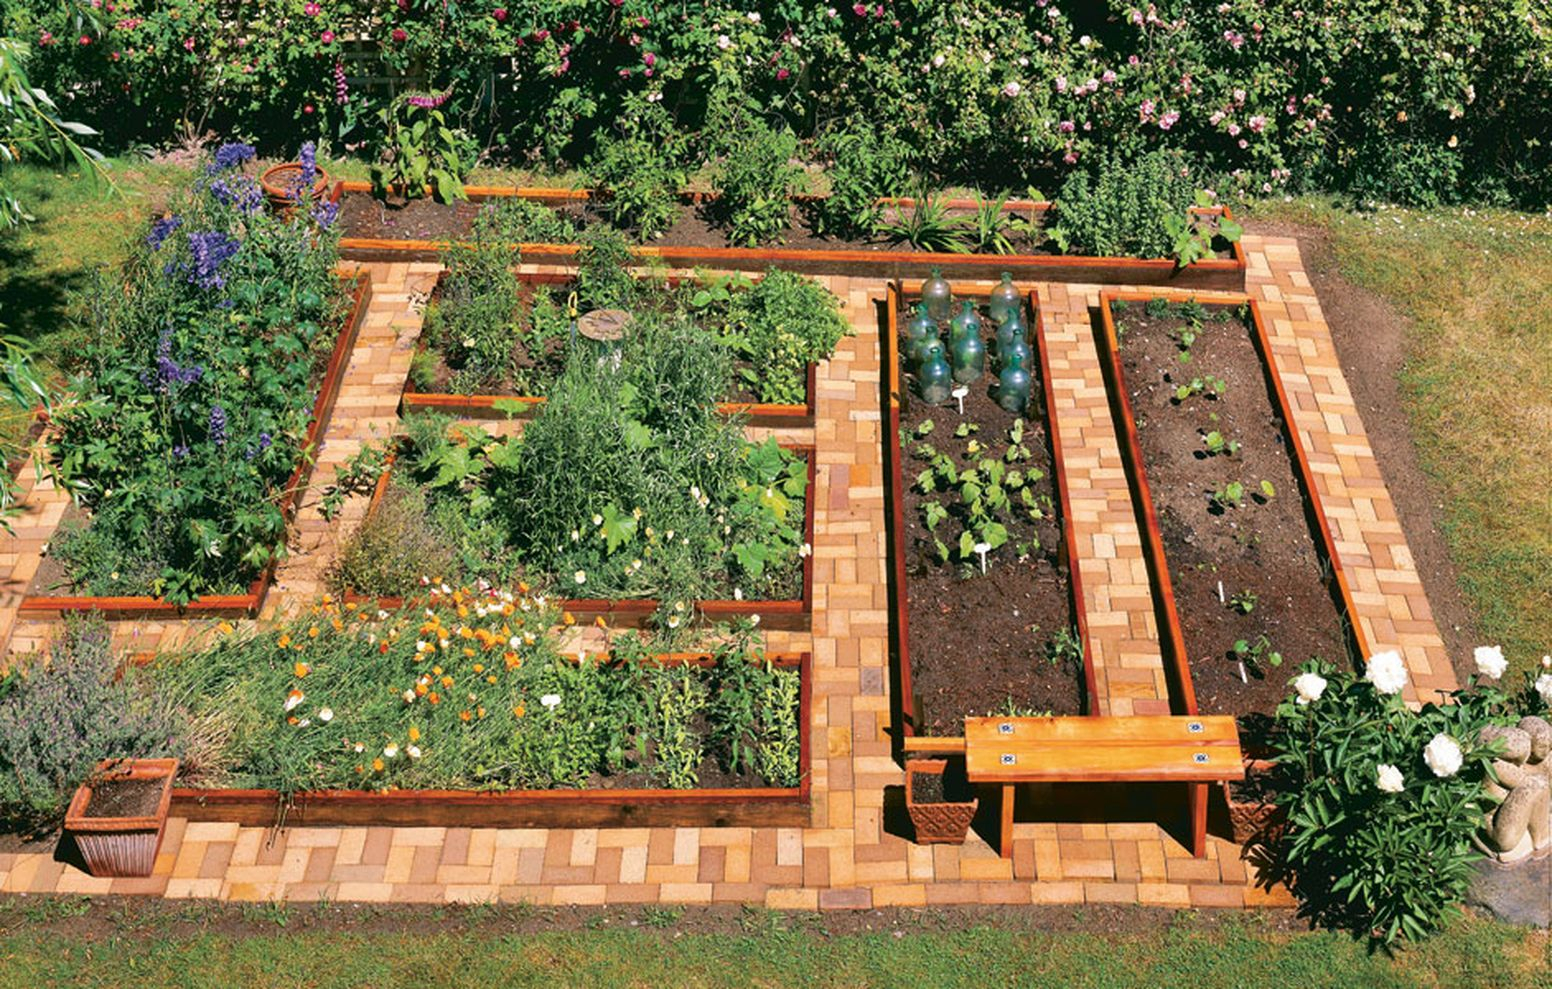 Best Backyard Vegetable Garden Designs Colors For Your in Vegetable Garden Design Ideas Backyard